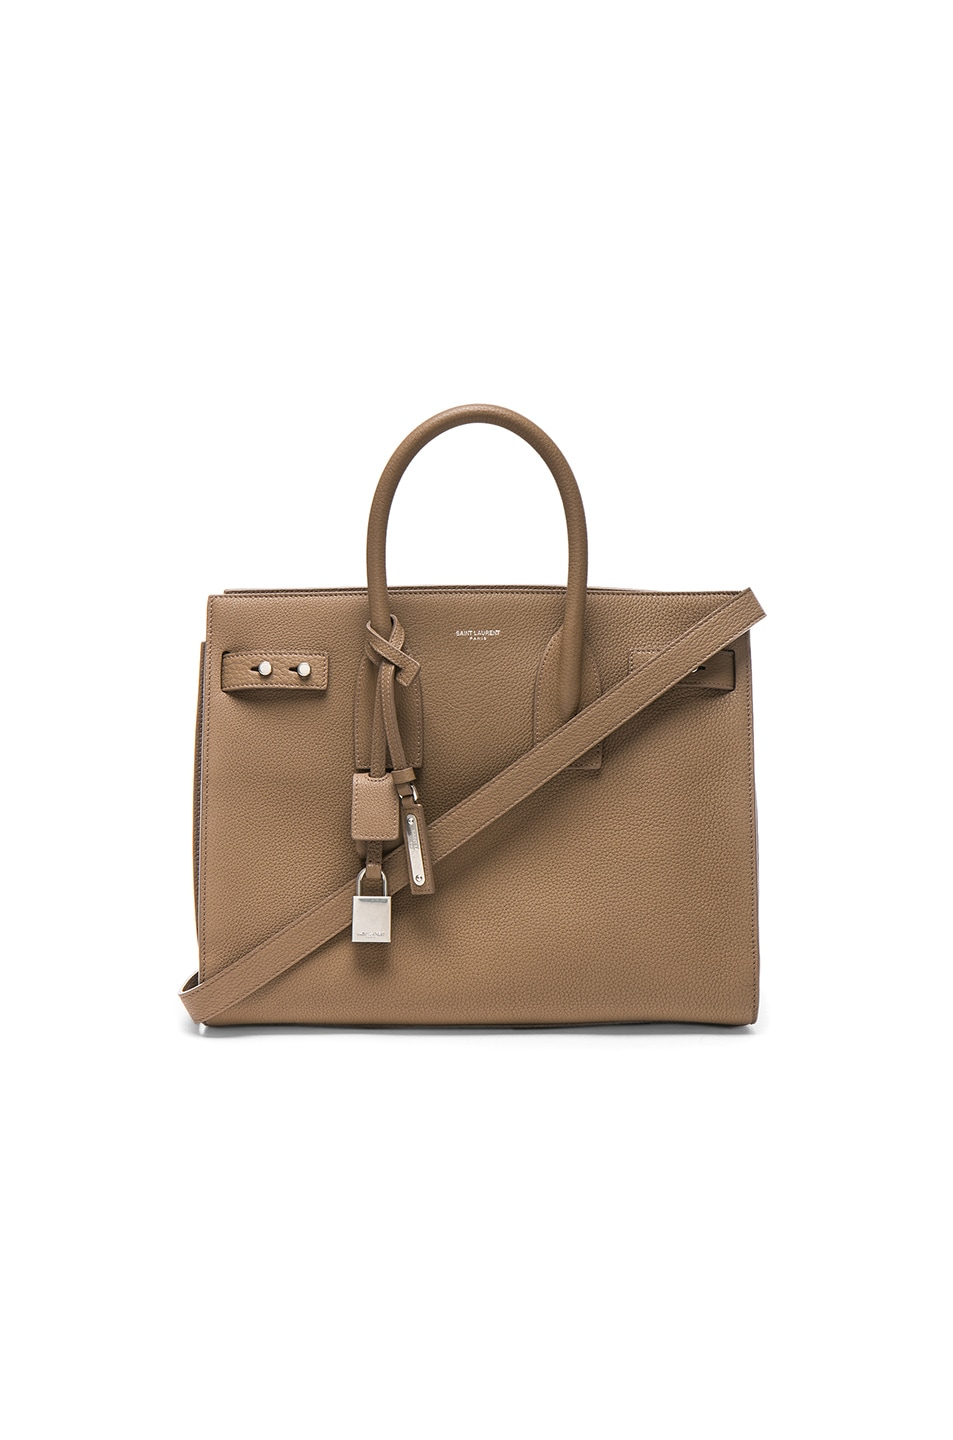 Image 1 of Saint Laurent Small Supple Sac de Jour in Taupe